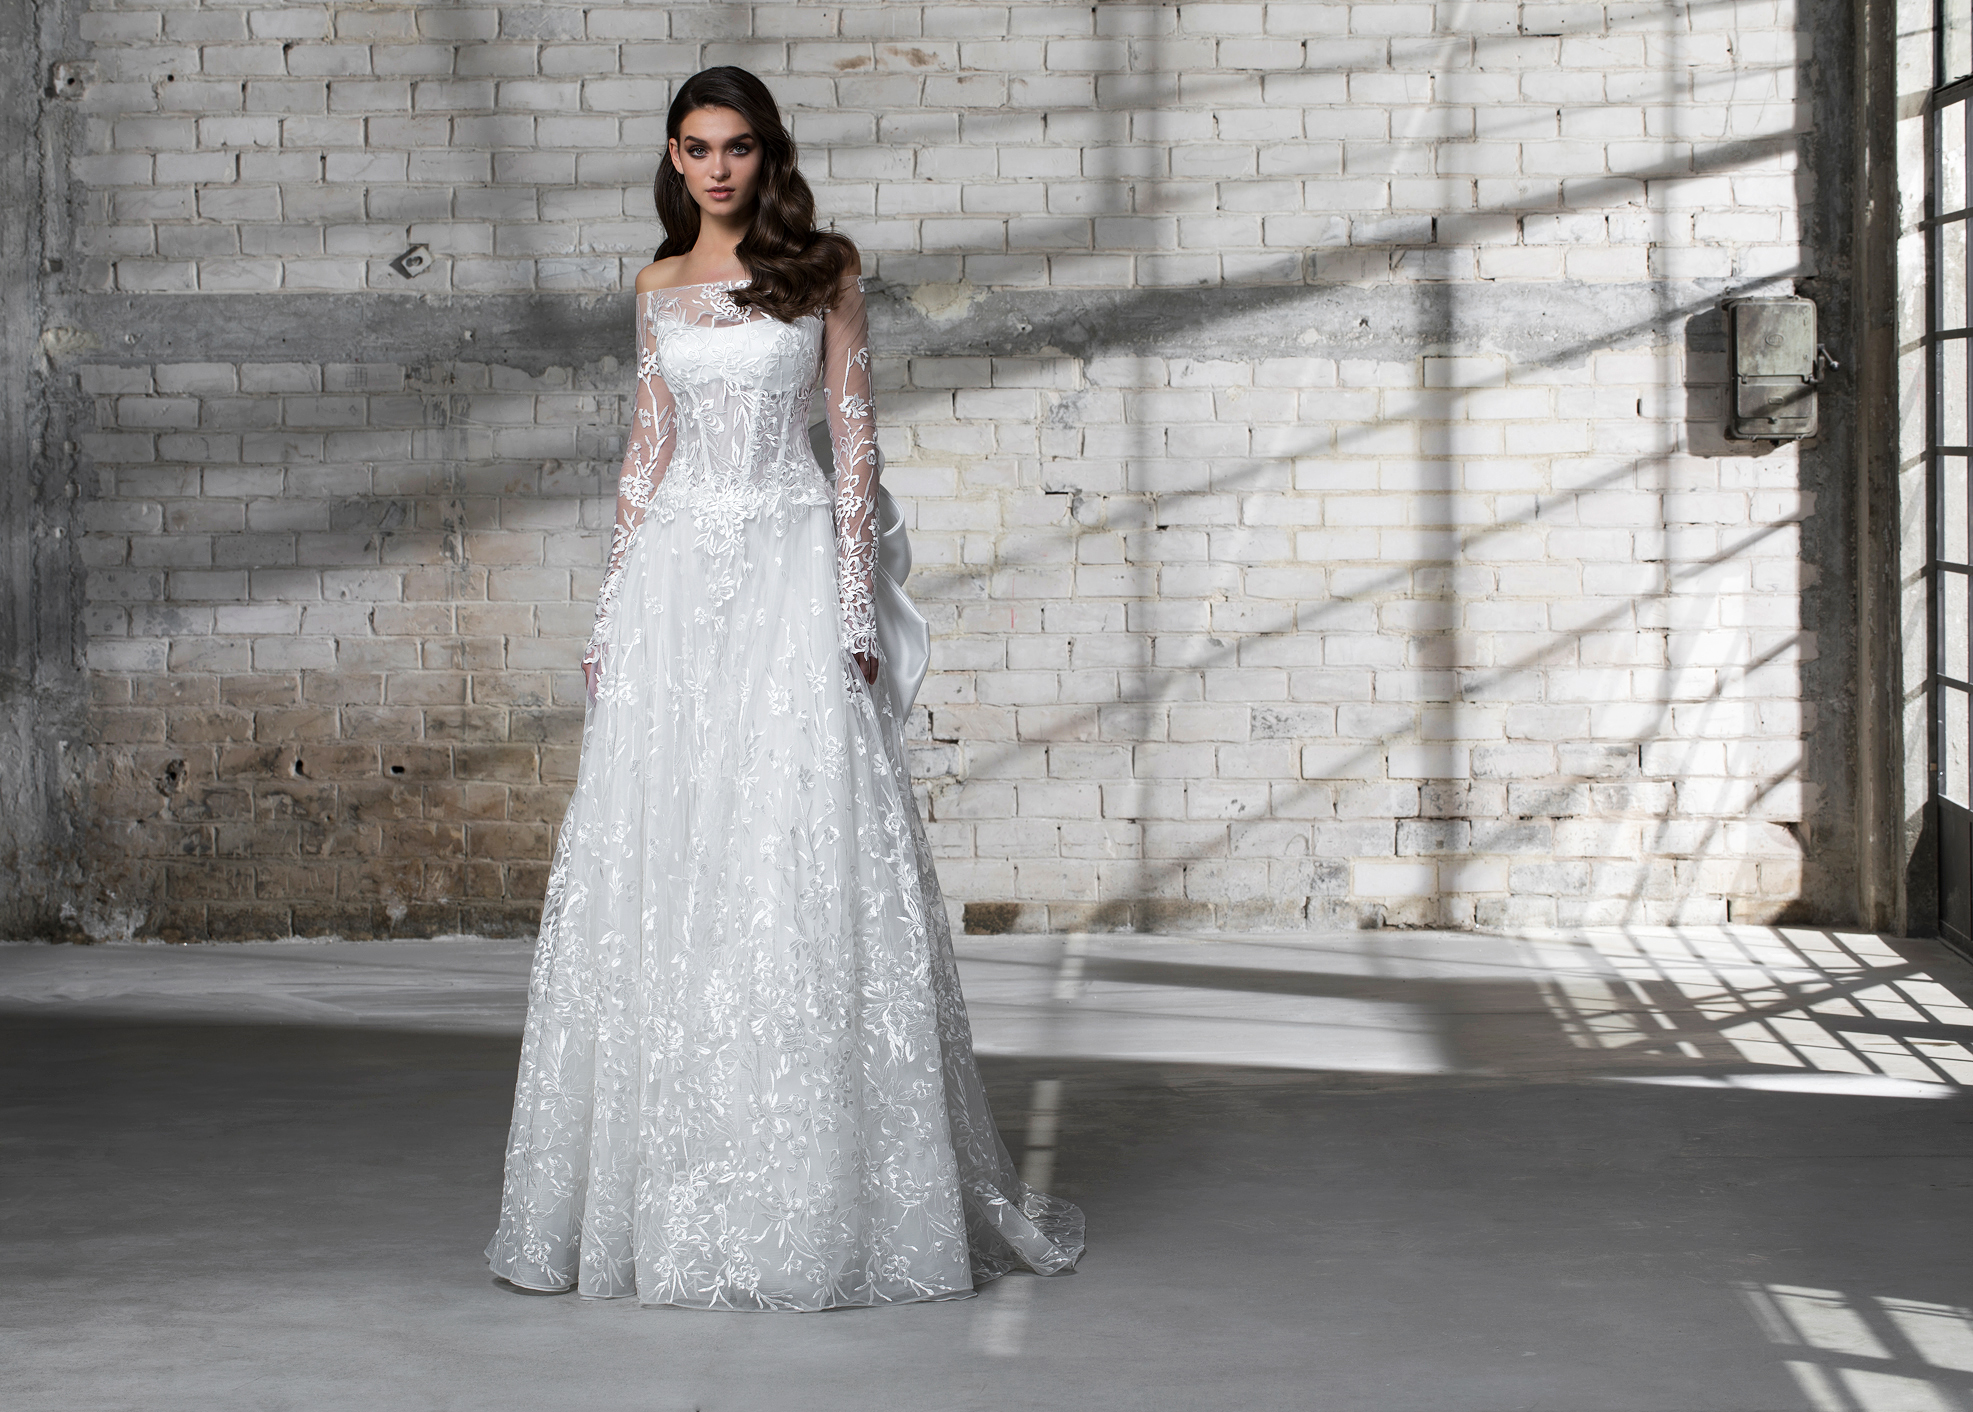 pnina tornai wedding dress spring 2019 off the shoulder long sleeves a-line